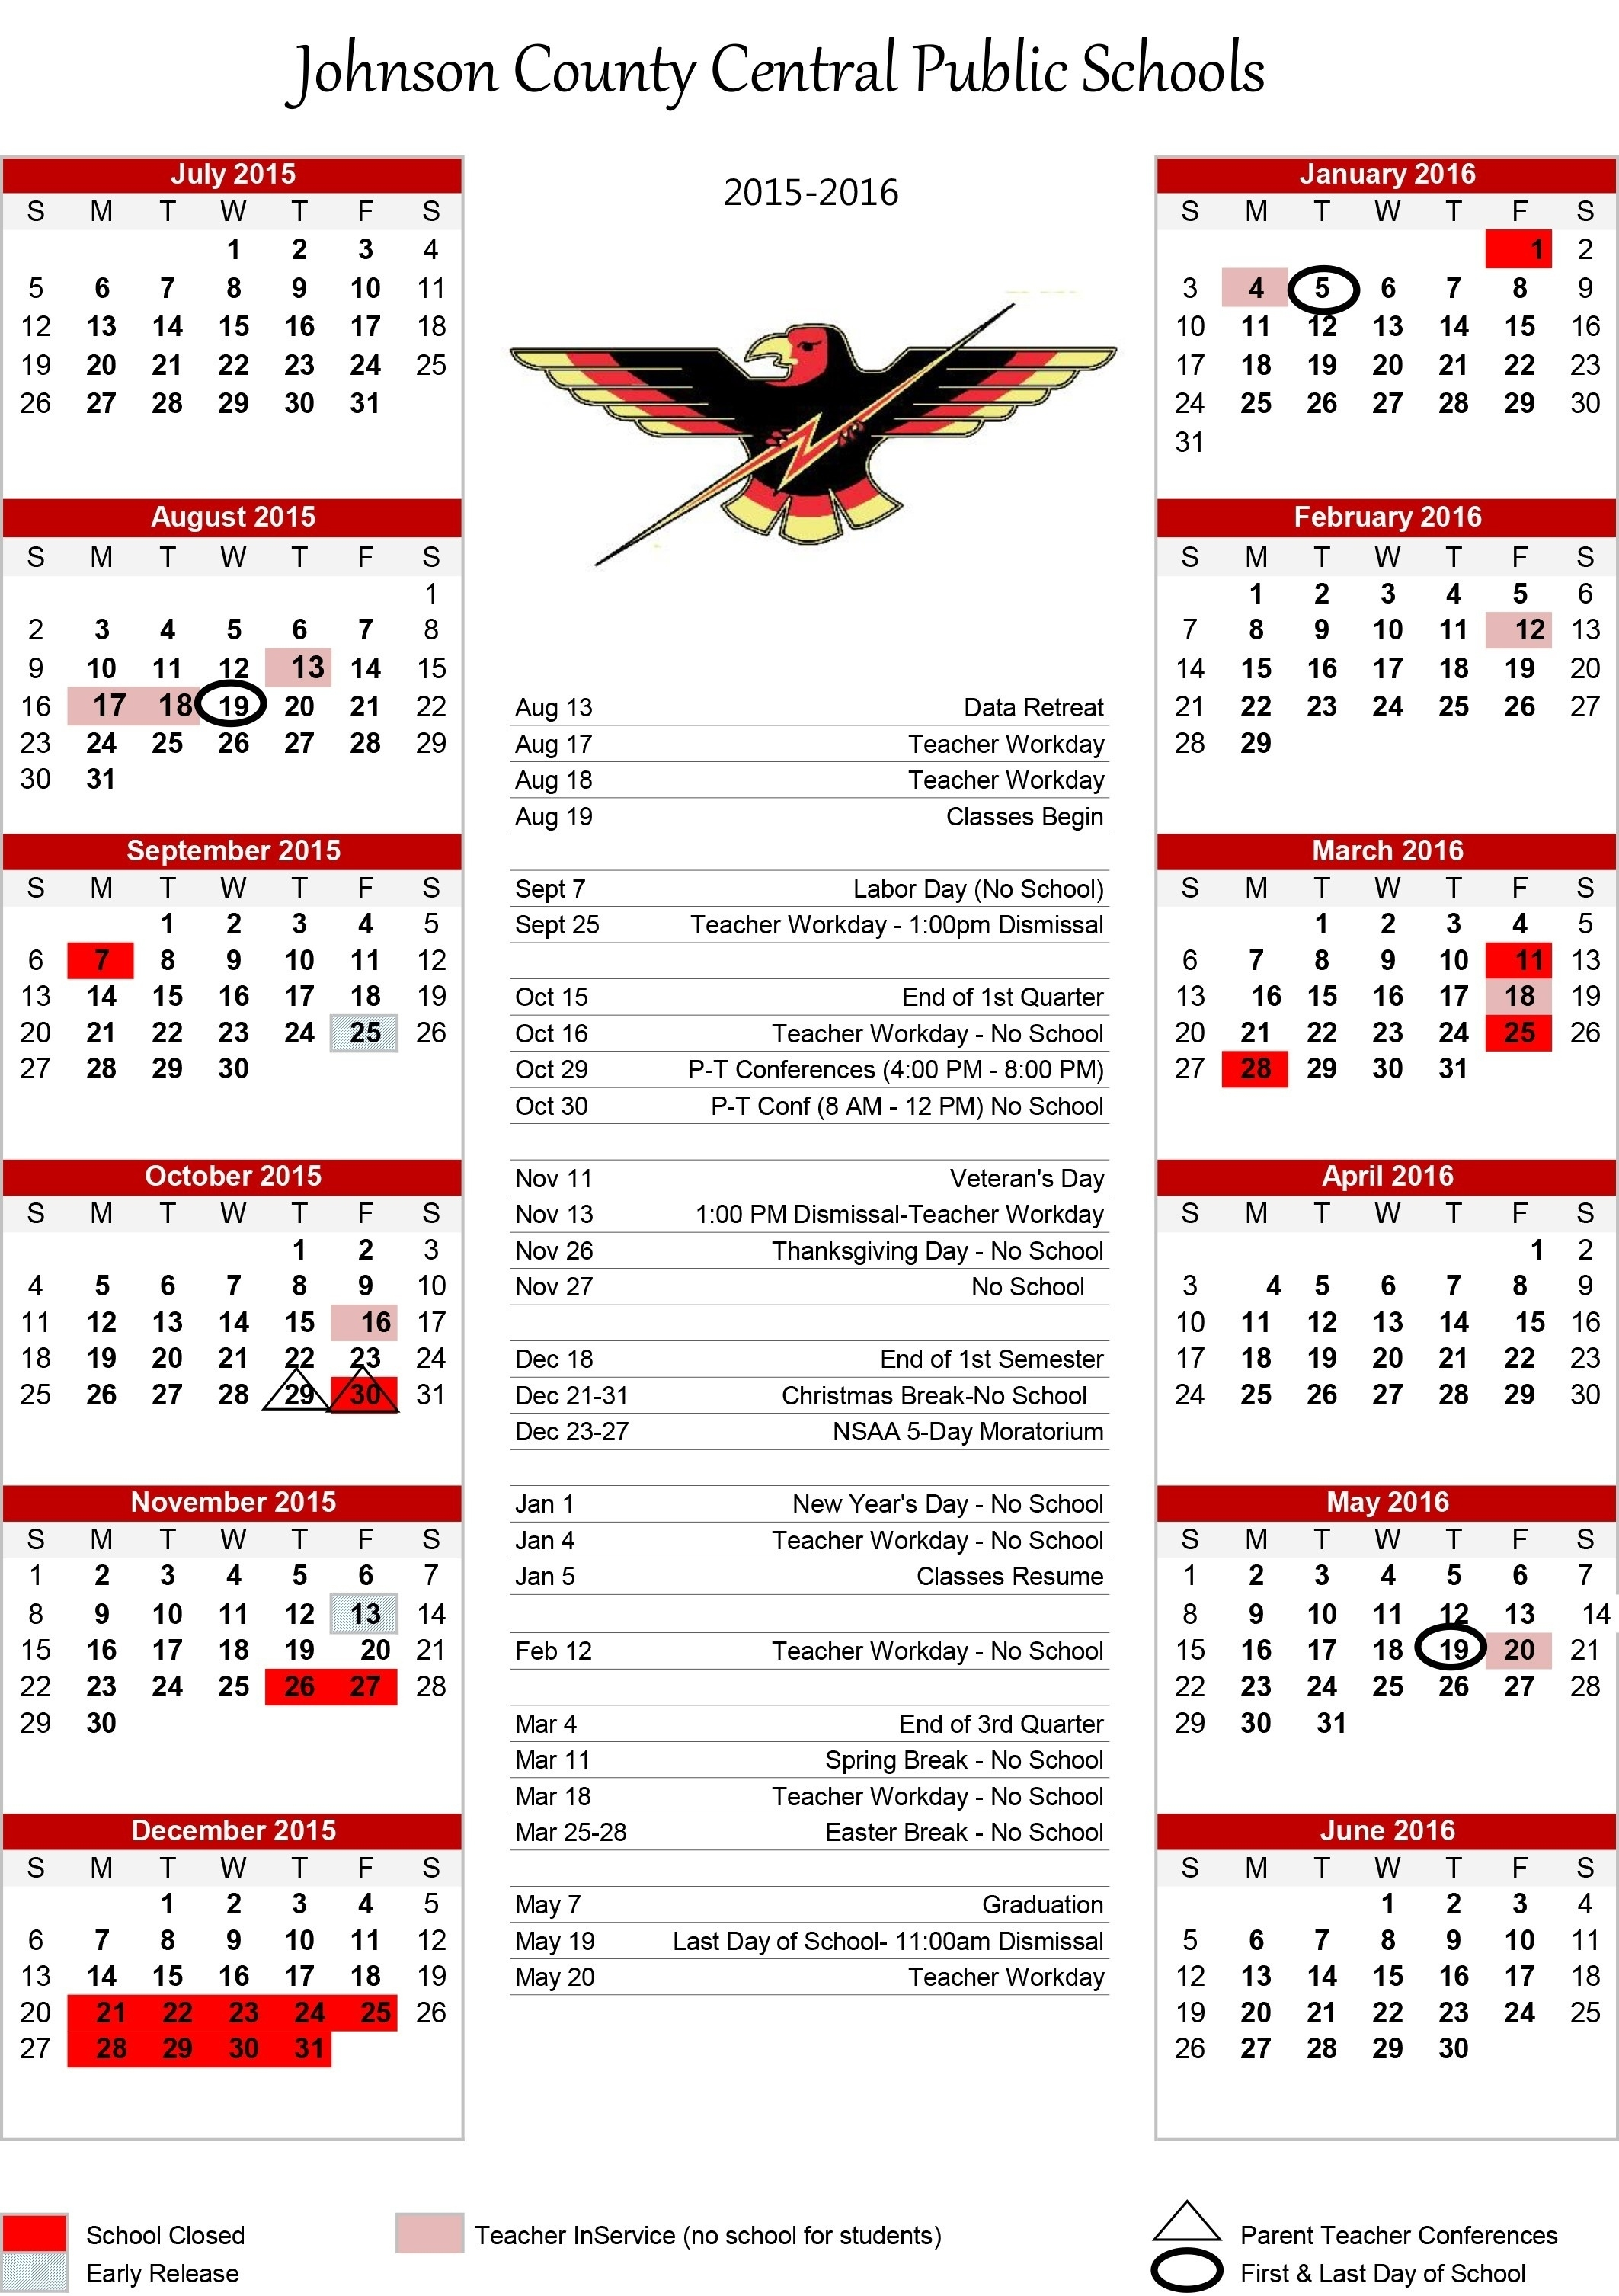 Dashing School Calendar Johnston County Nc • Printable Blank_School Calendar Johnston County Nc